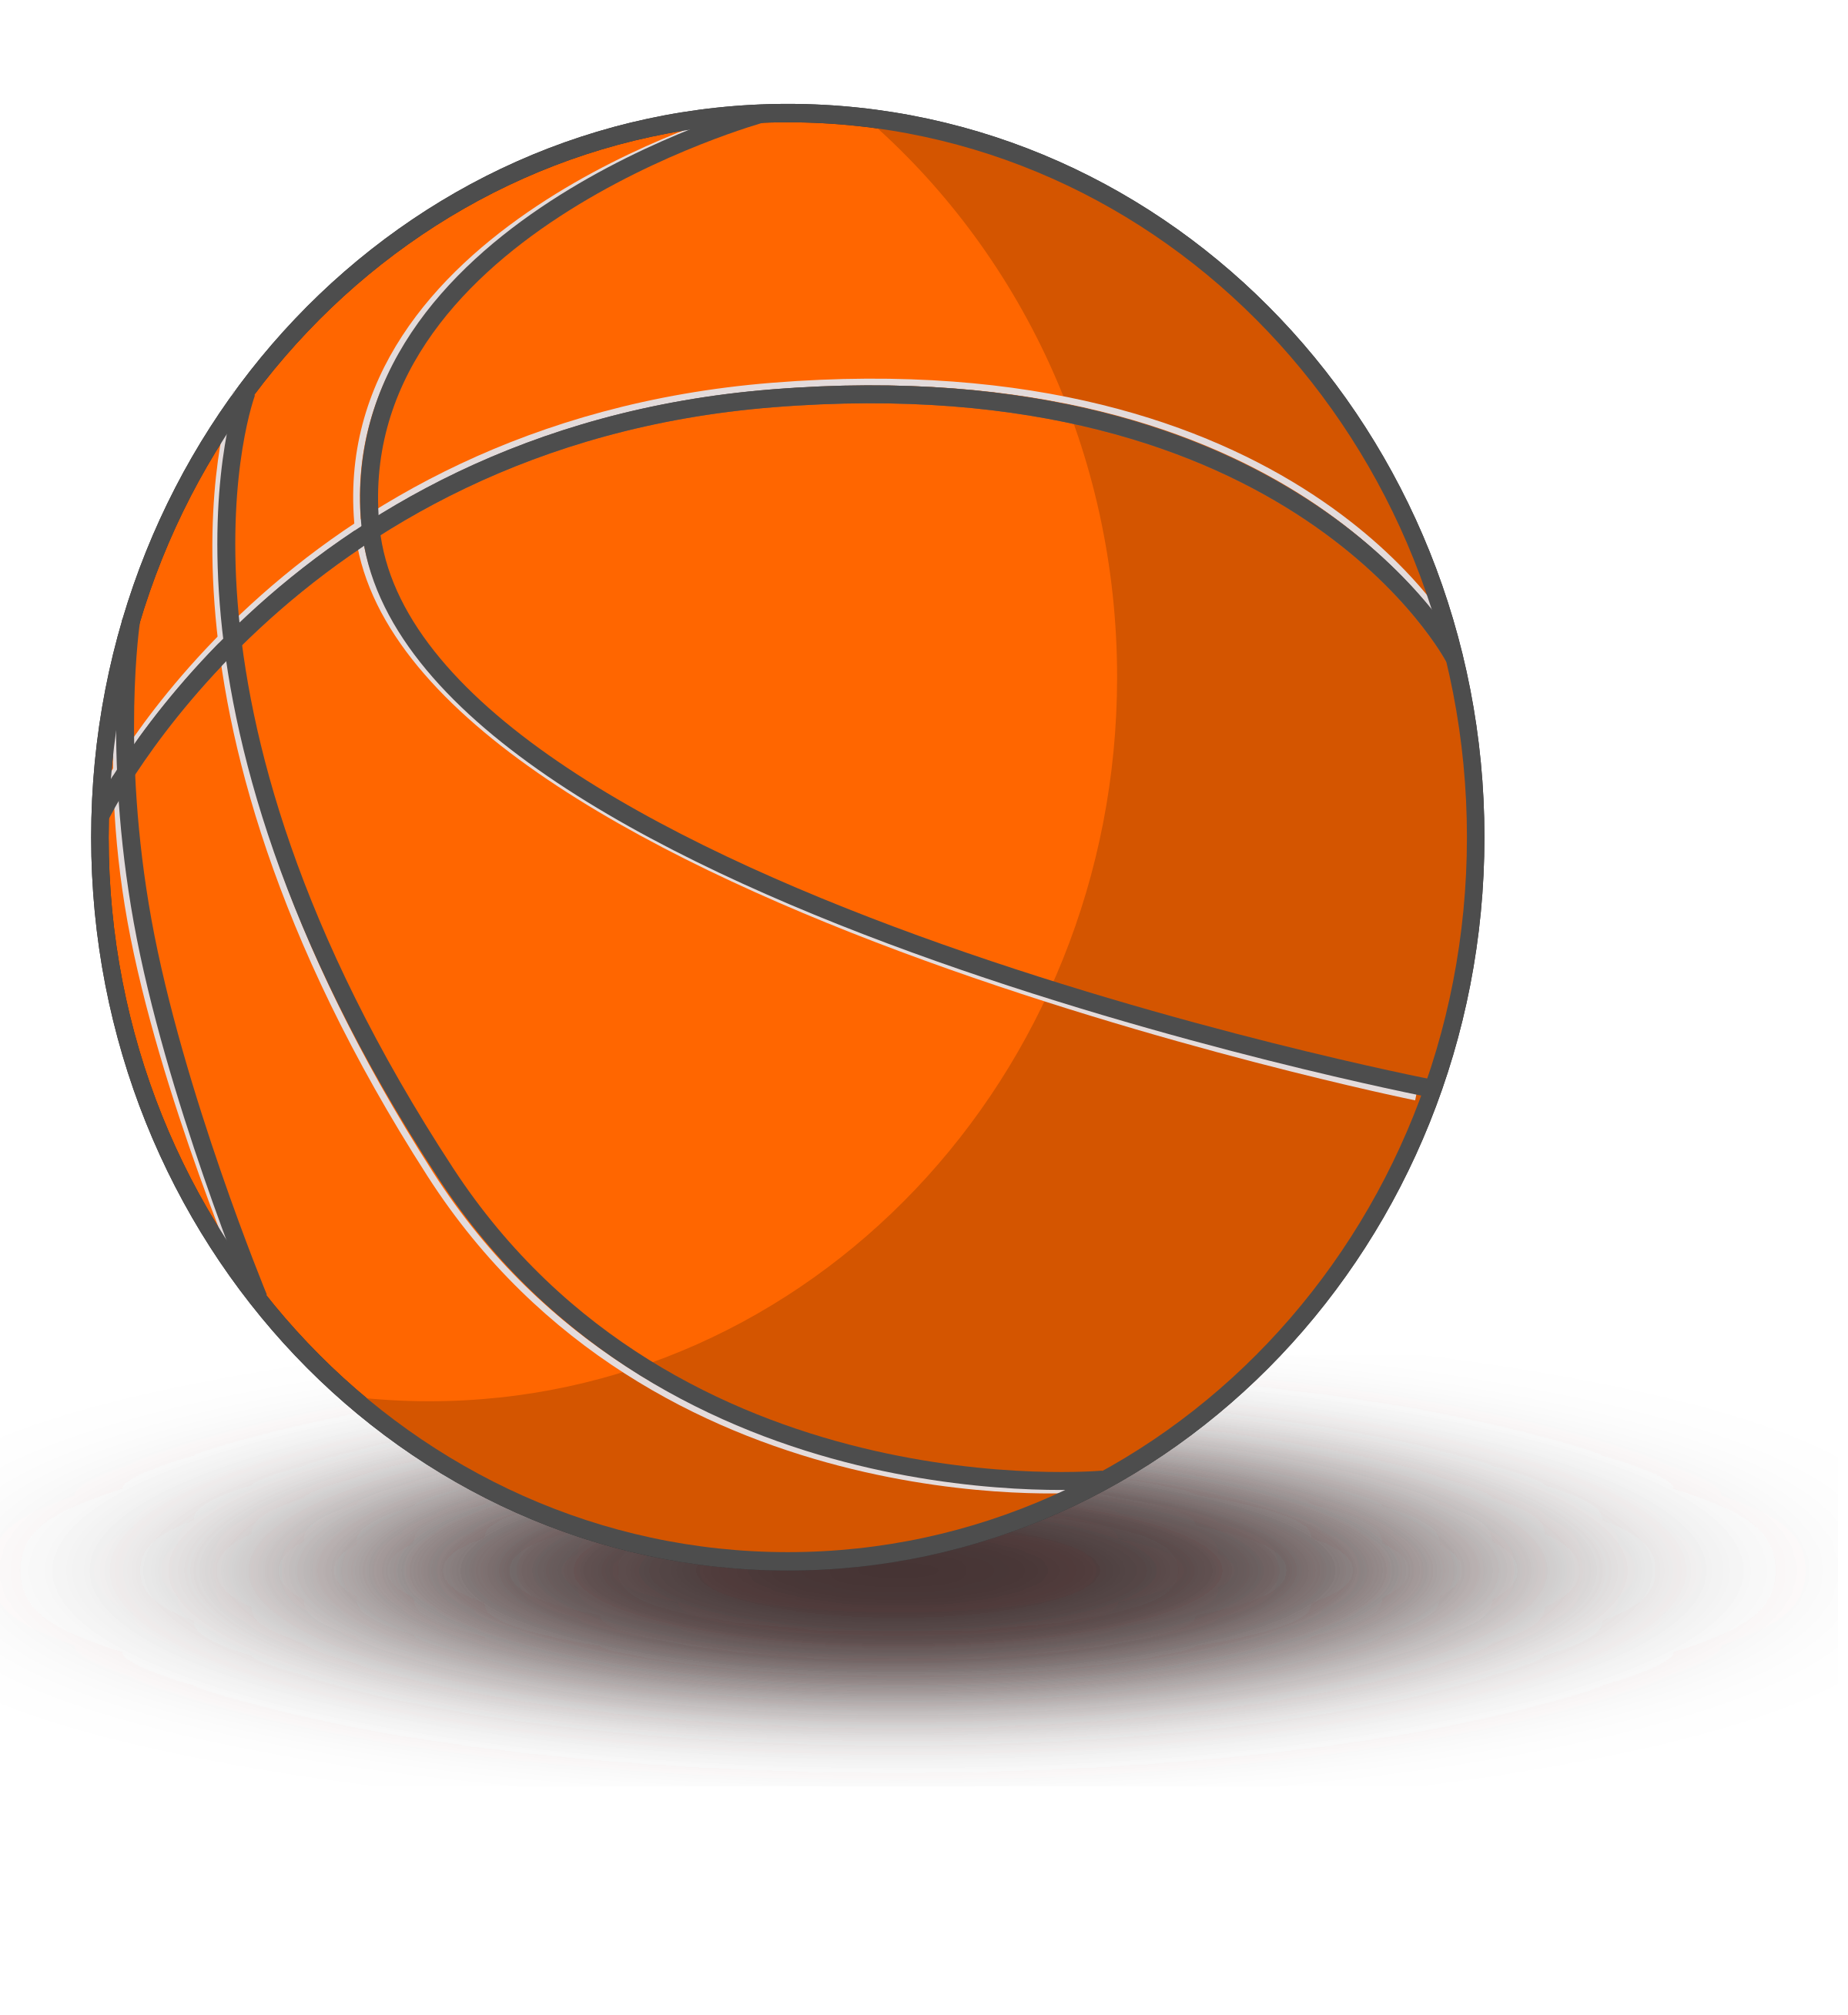 Basketball by Stellaris